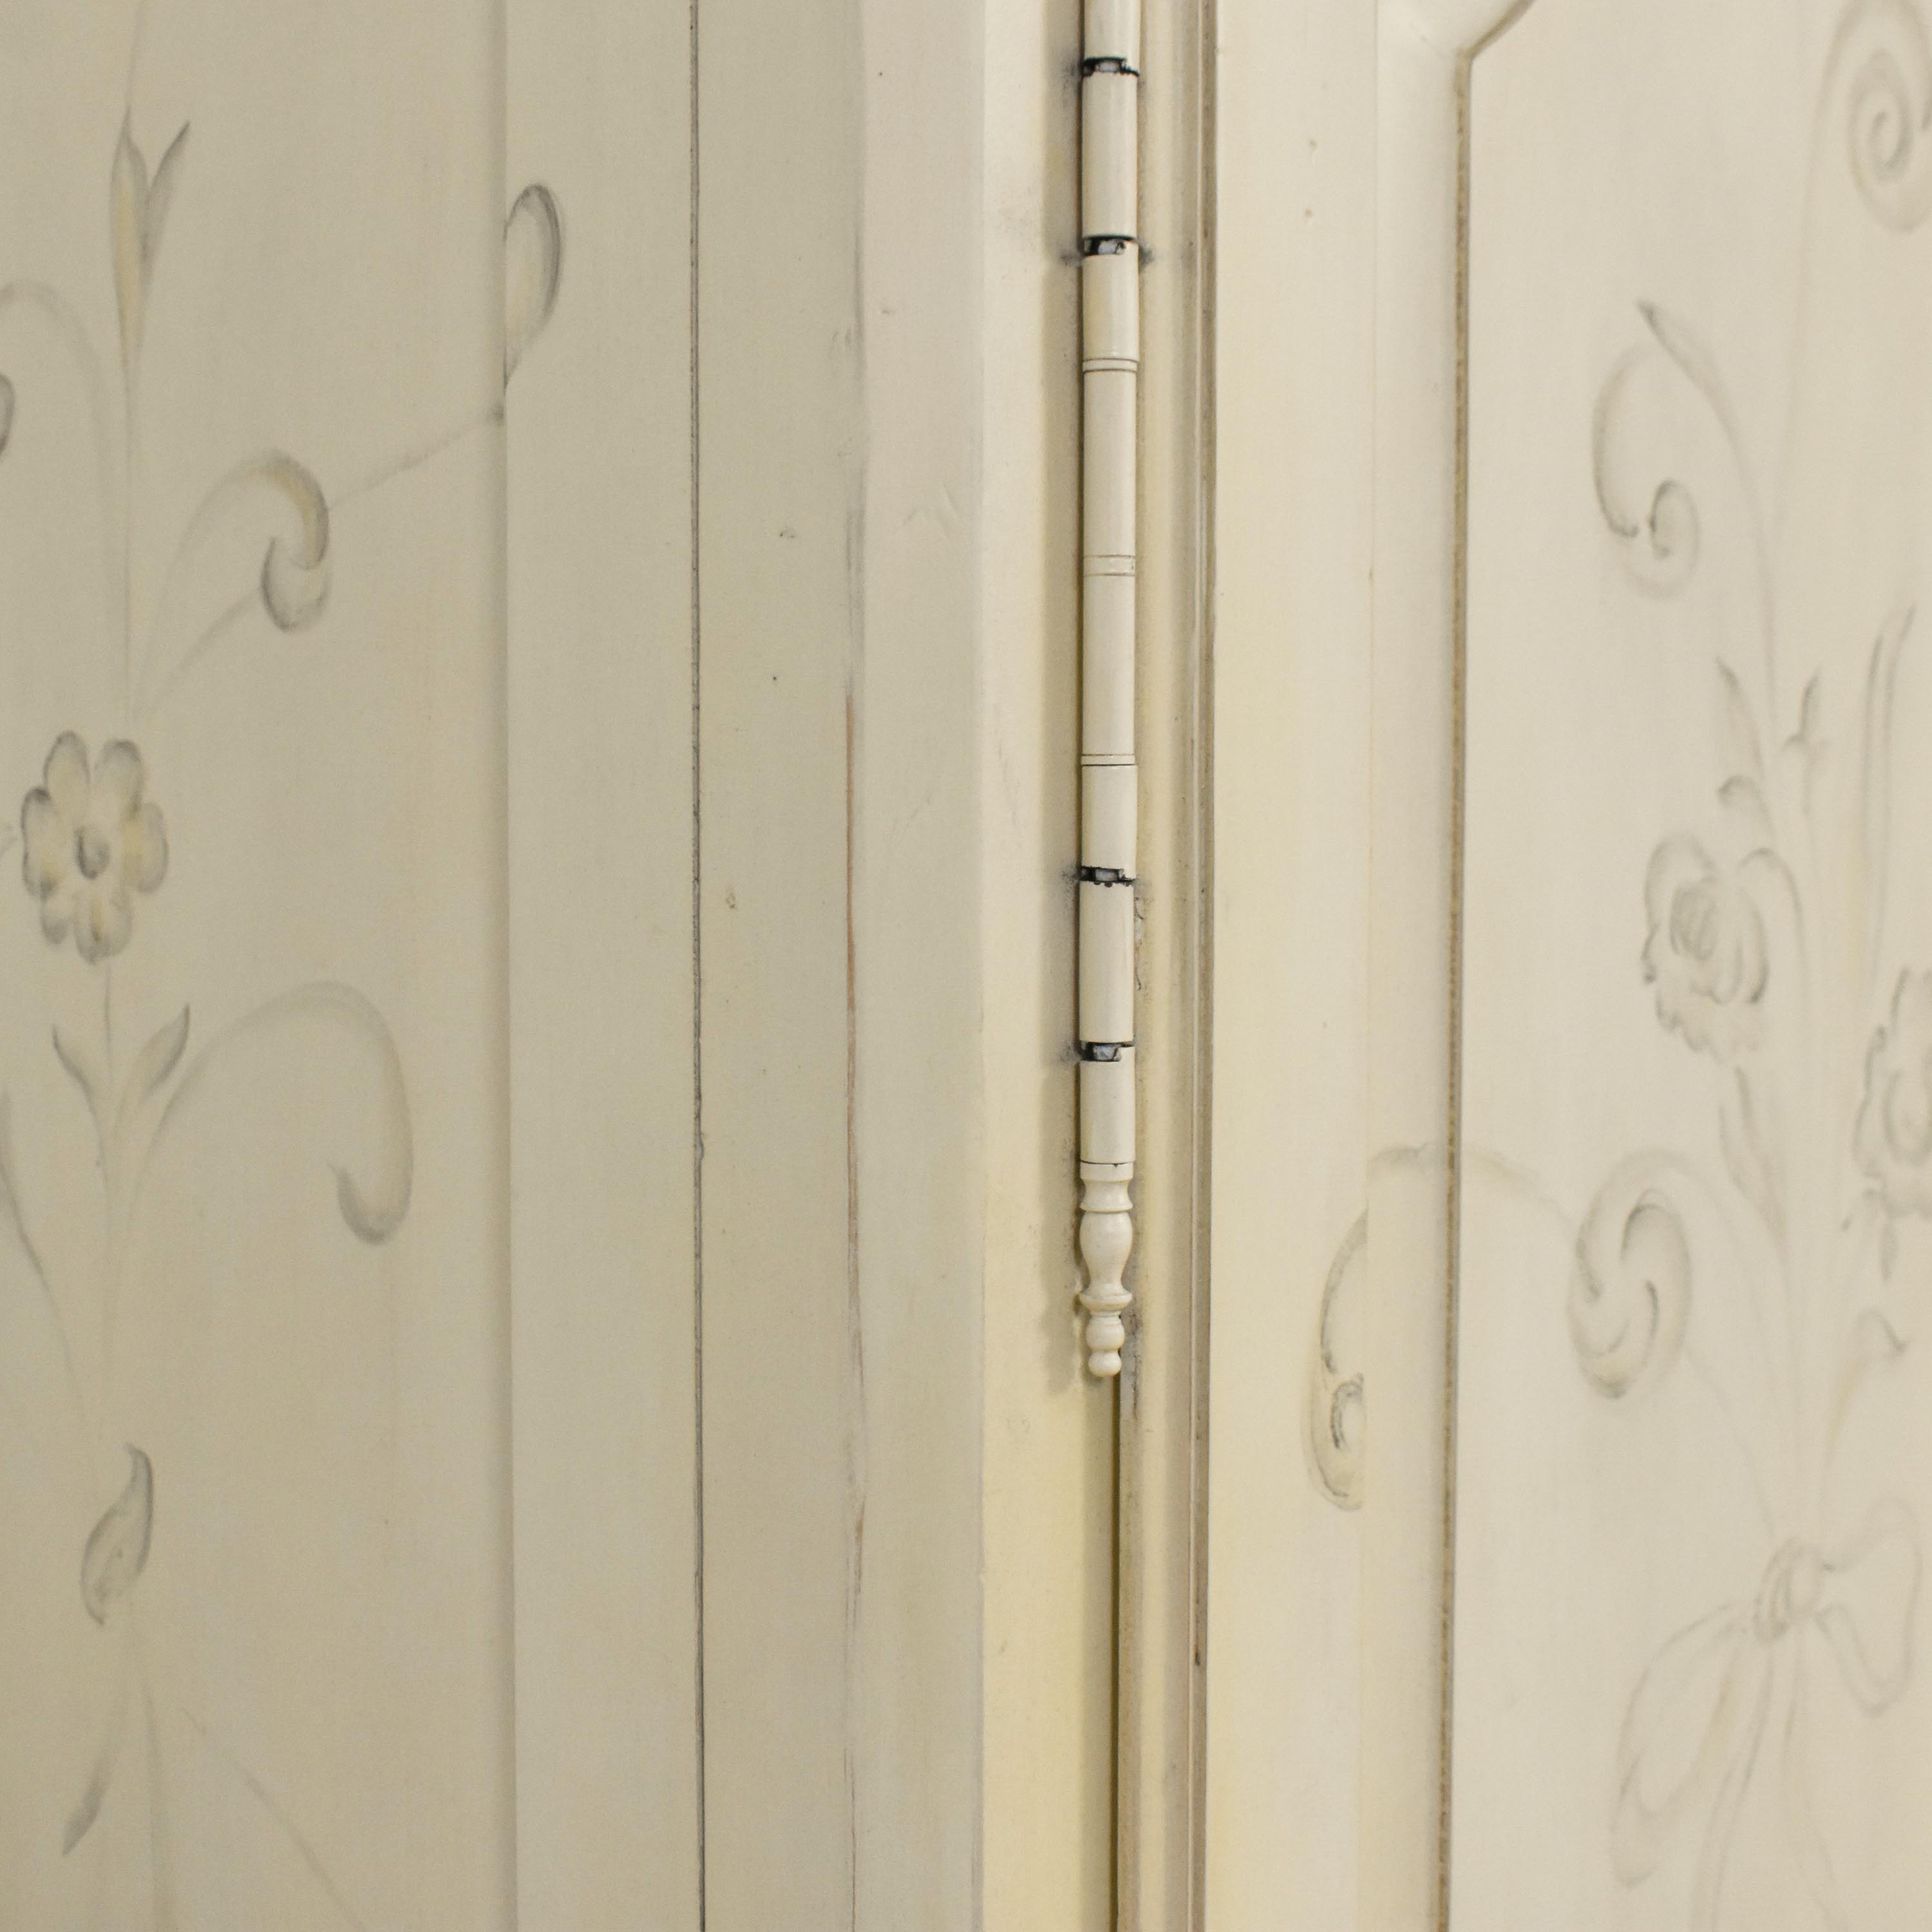 Ethan Allen Ethan Allen Decorated Country French Armoire ma